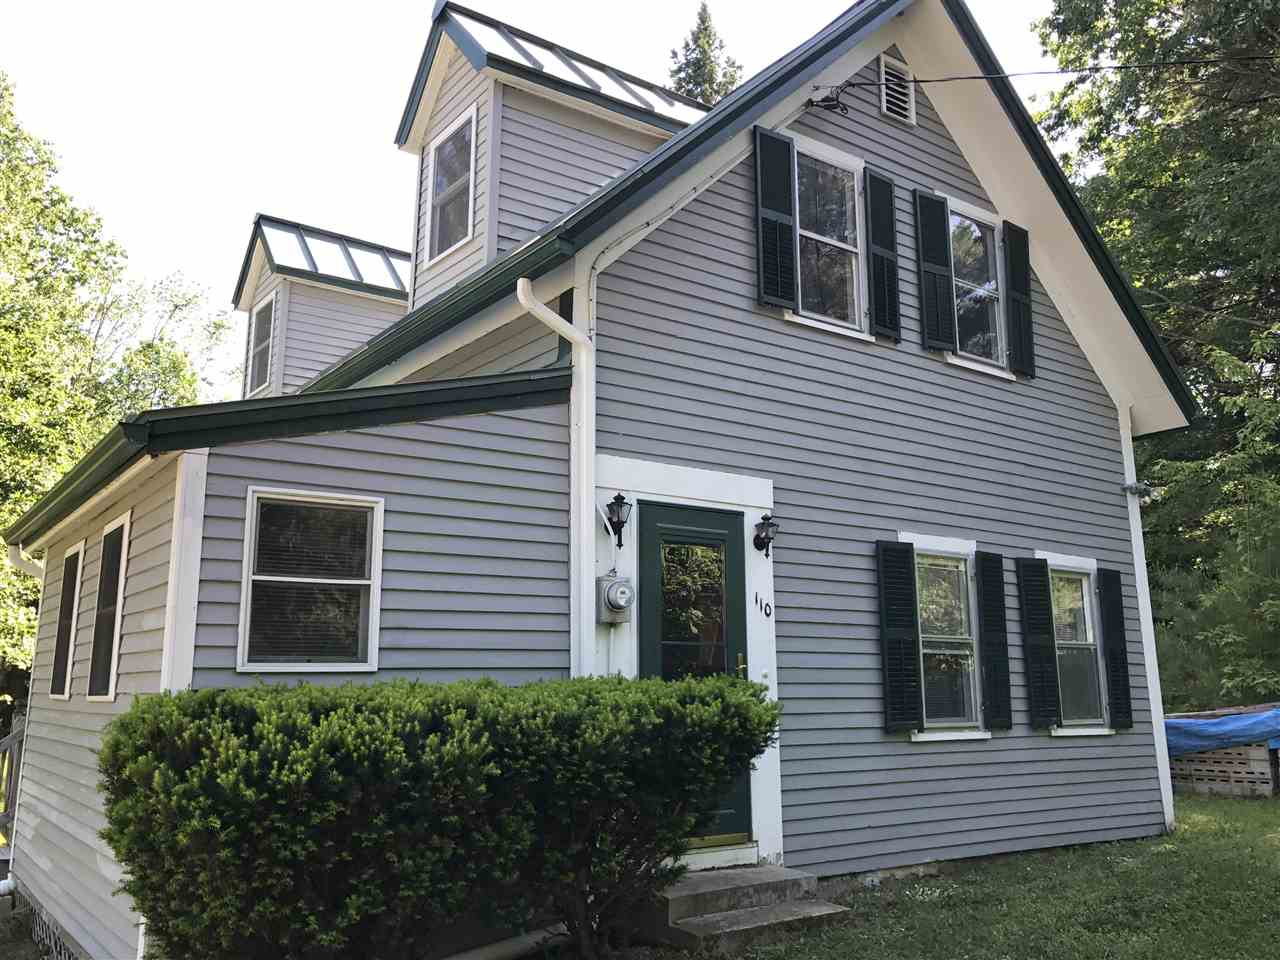 VILLAGE OF OSSIPEE VILLAGE NH IN TOWN OF OSSIPEE NH Home for sale $168,500